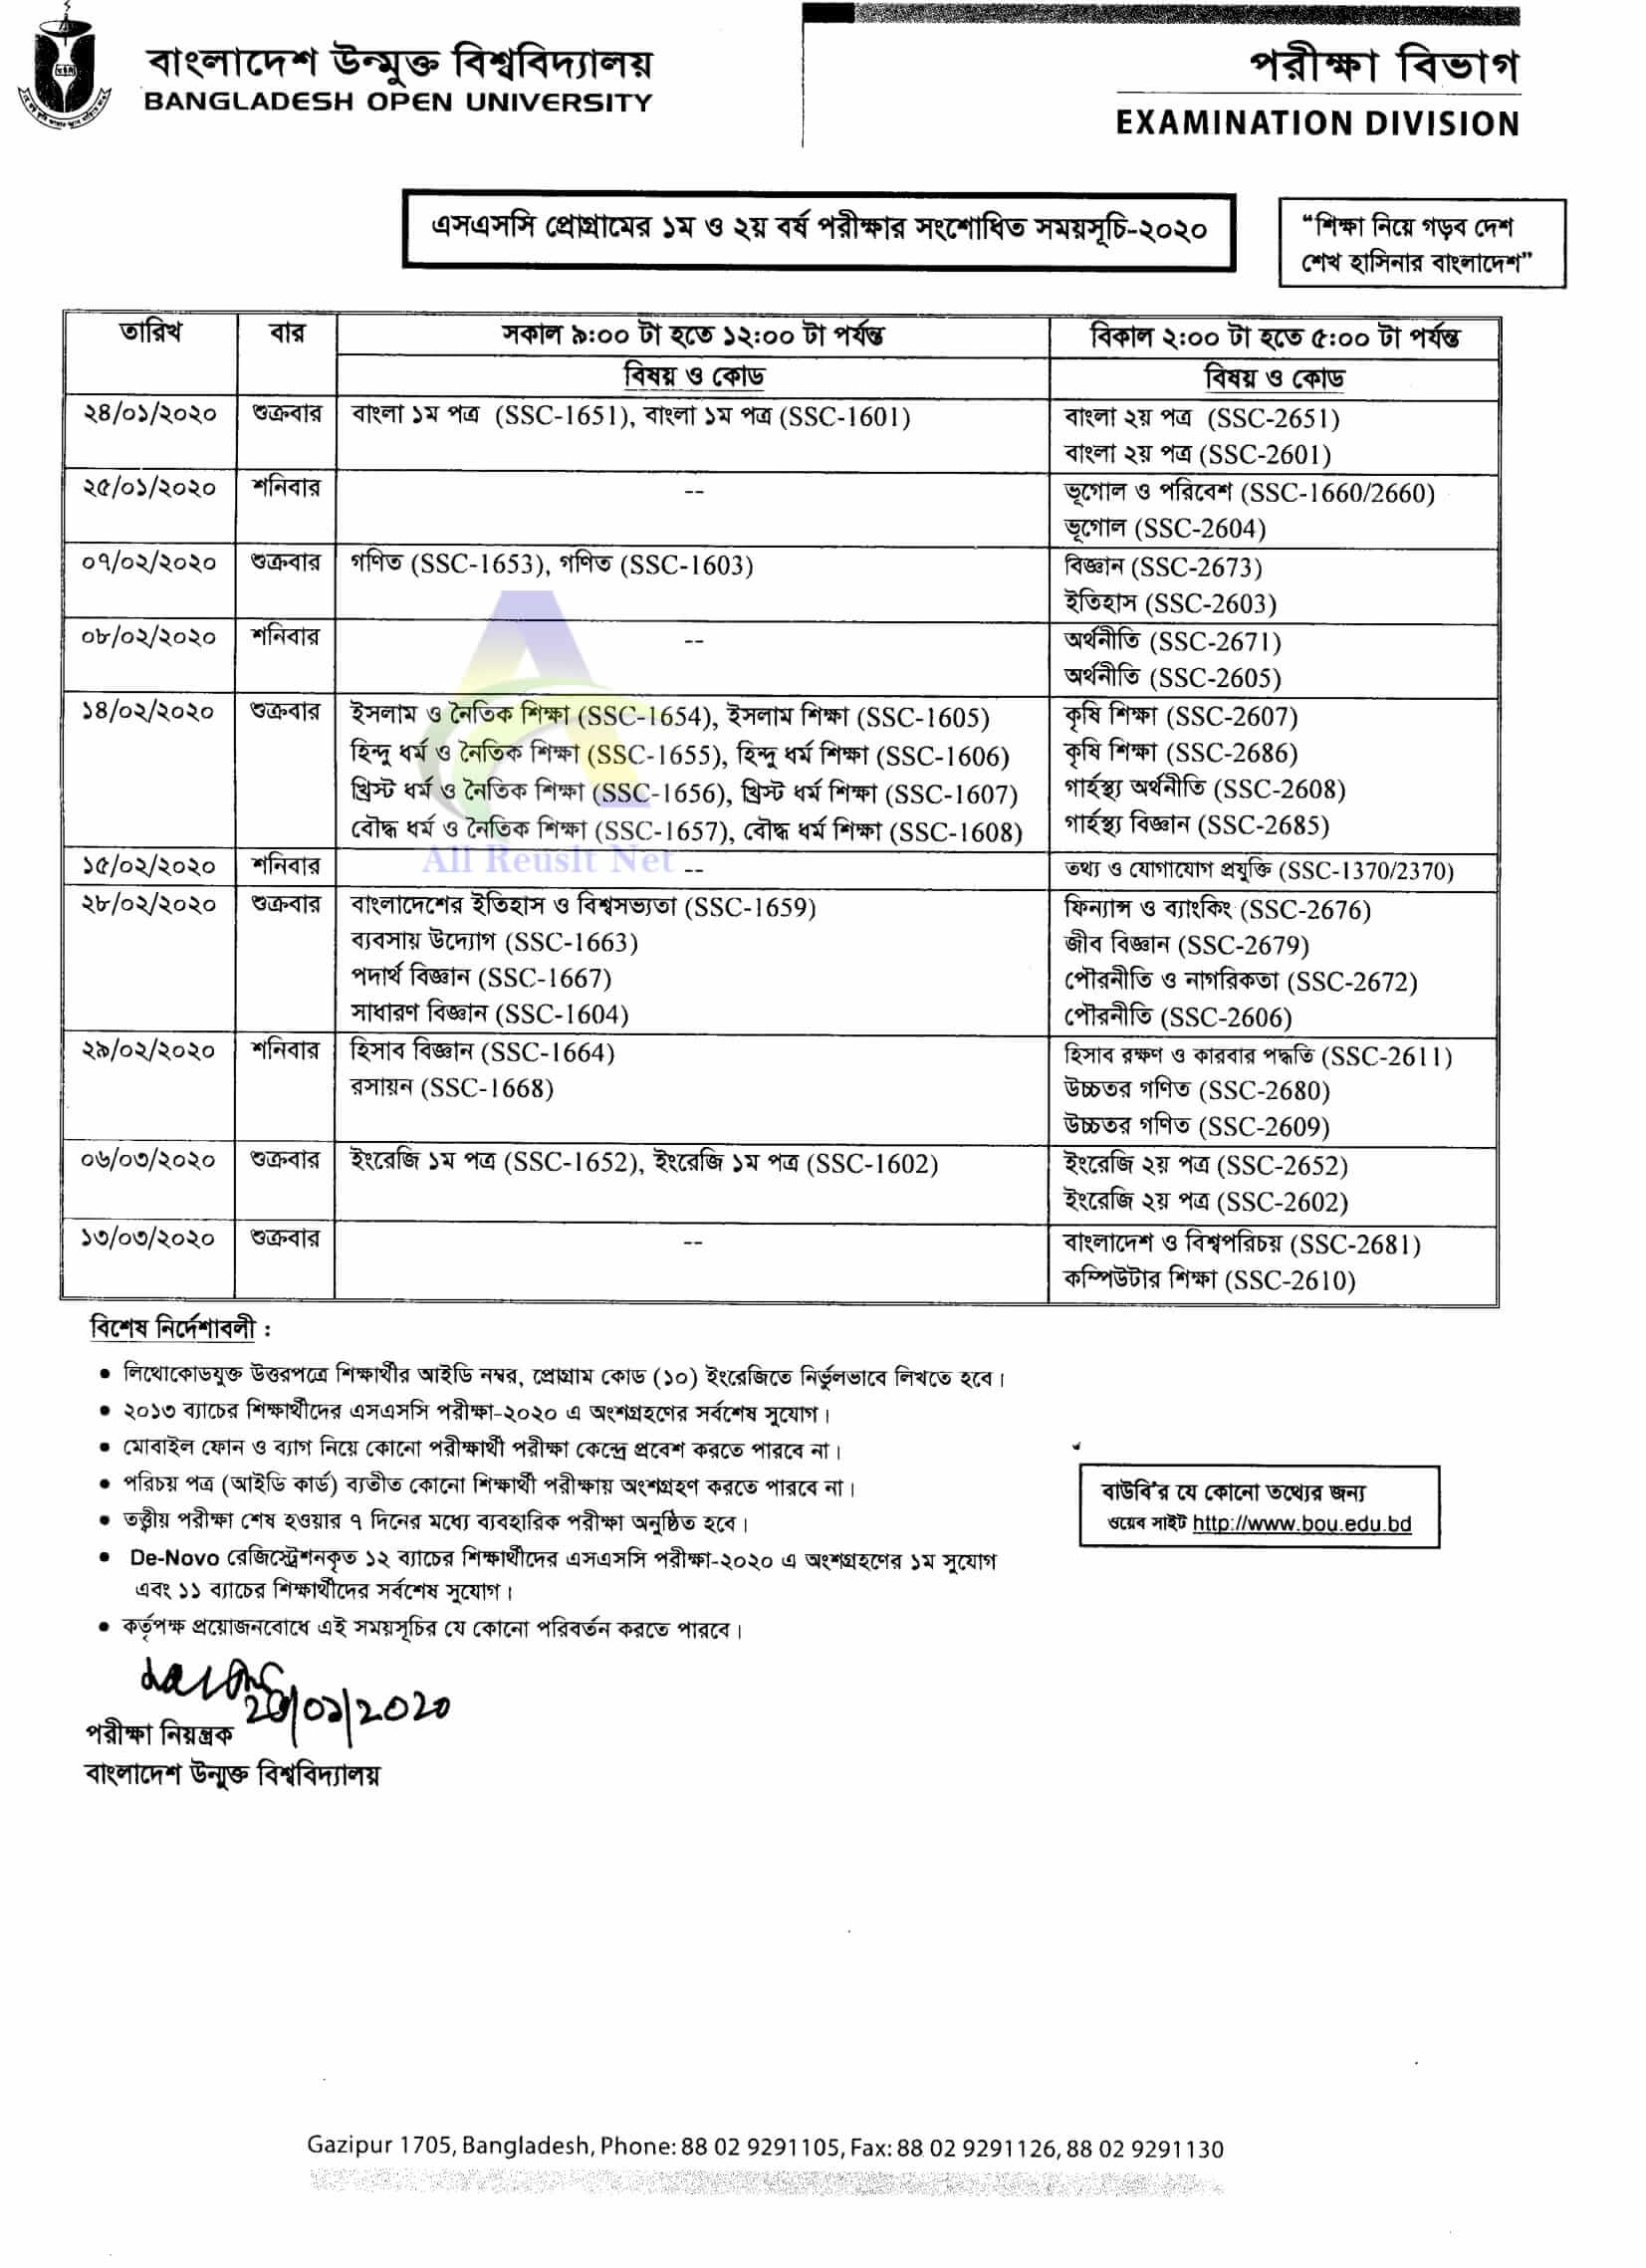 New BOU SSC Routine 2021